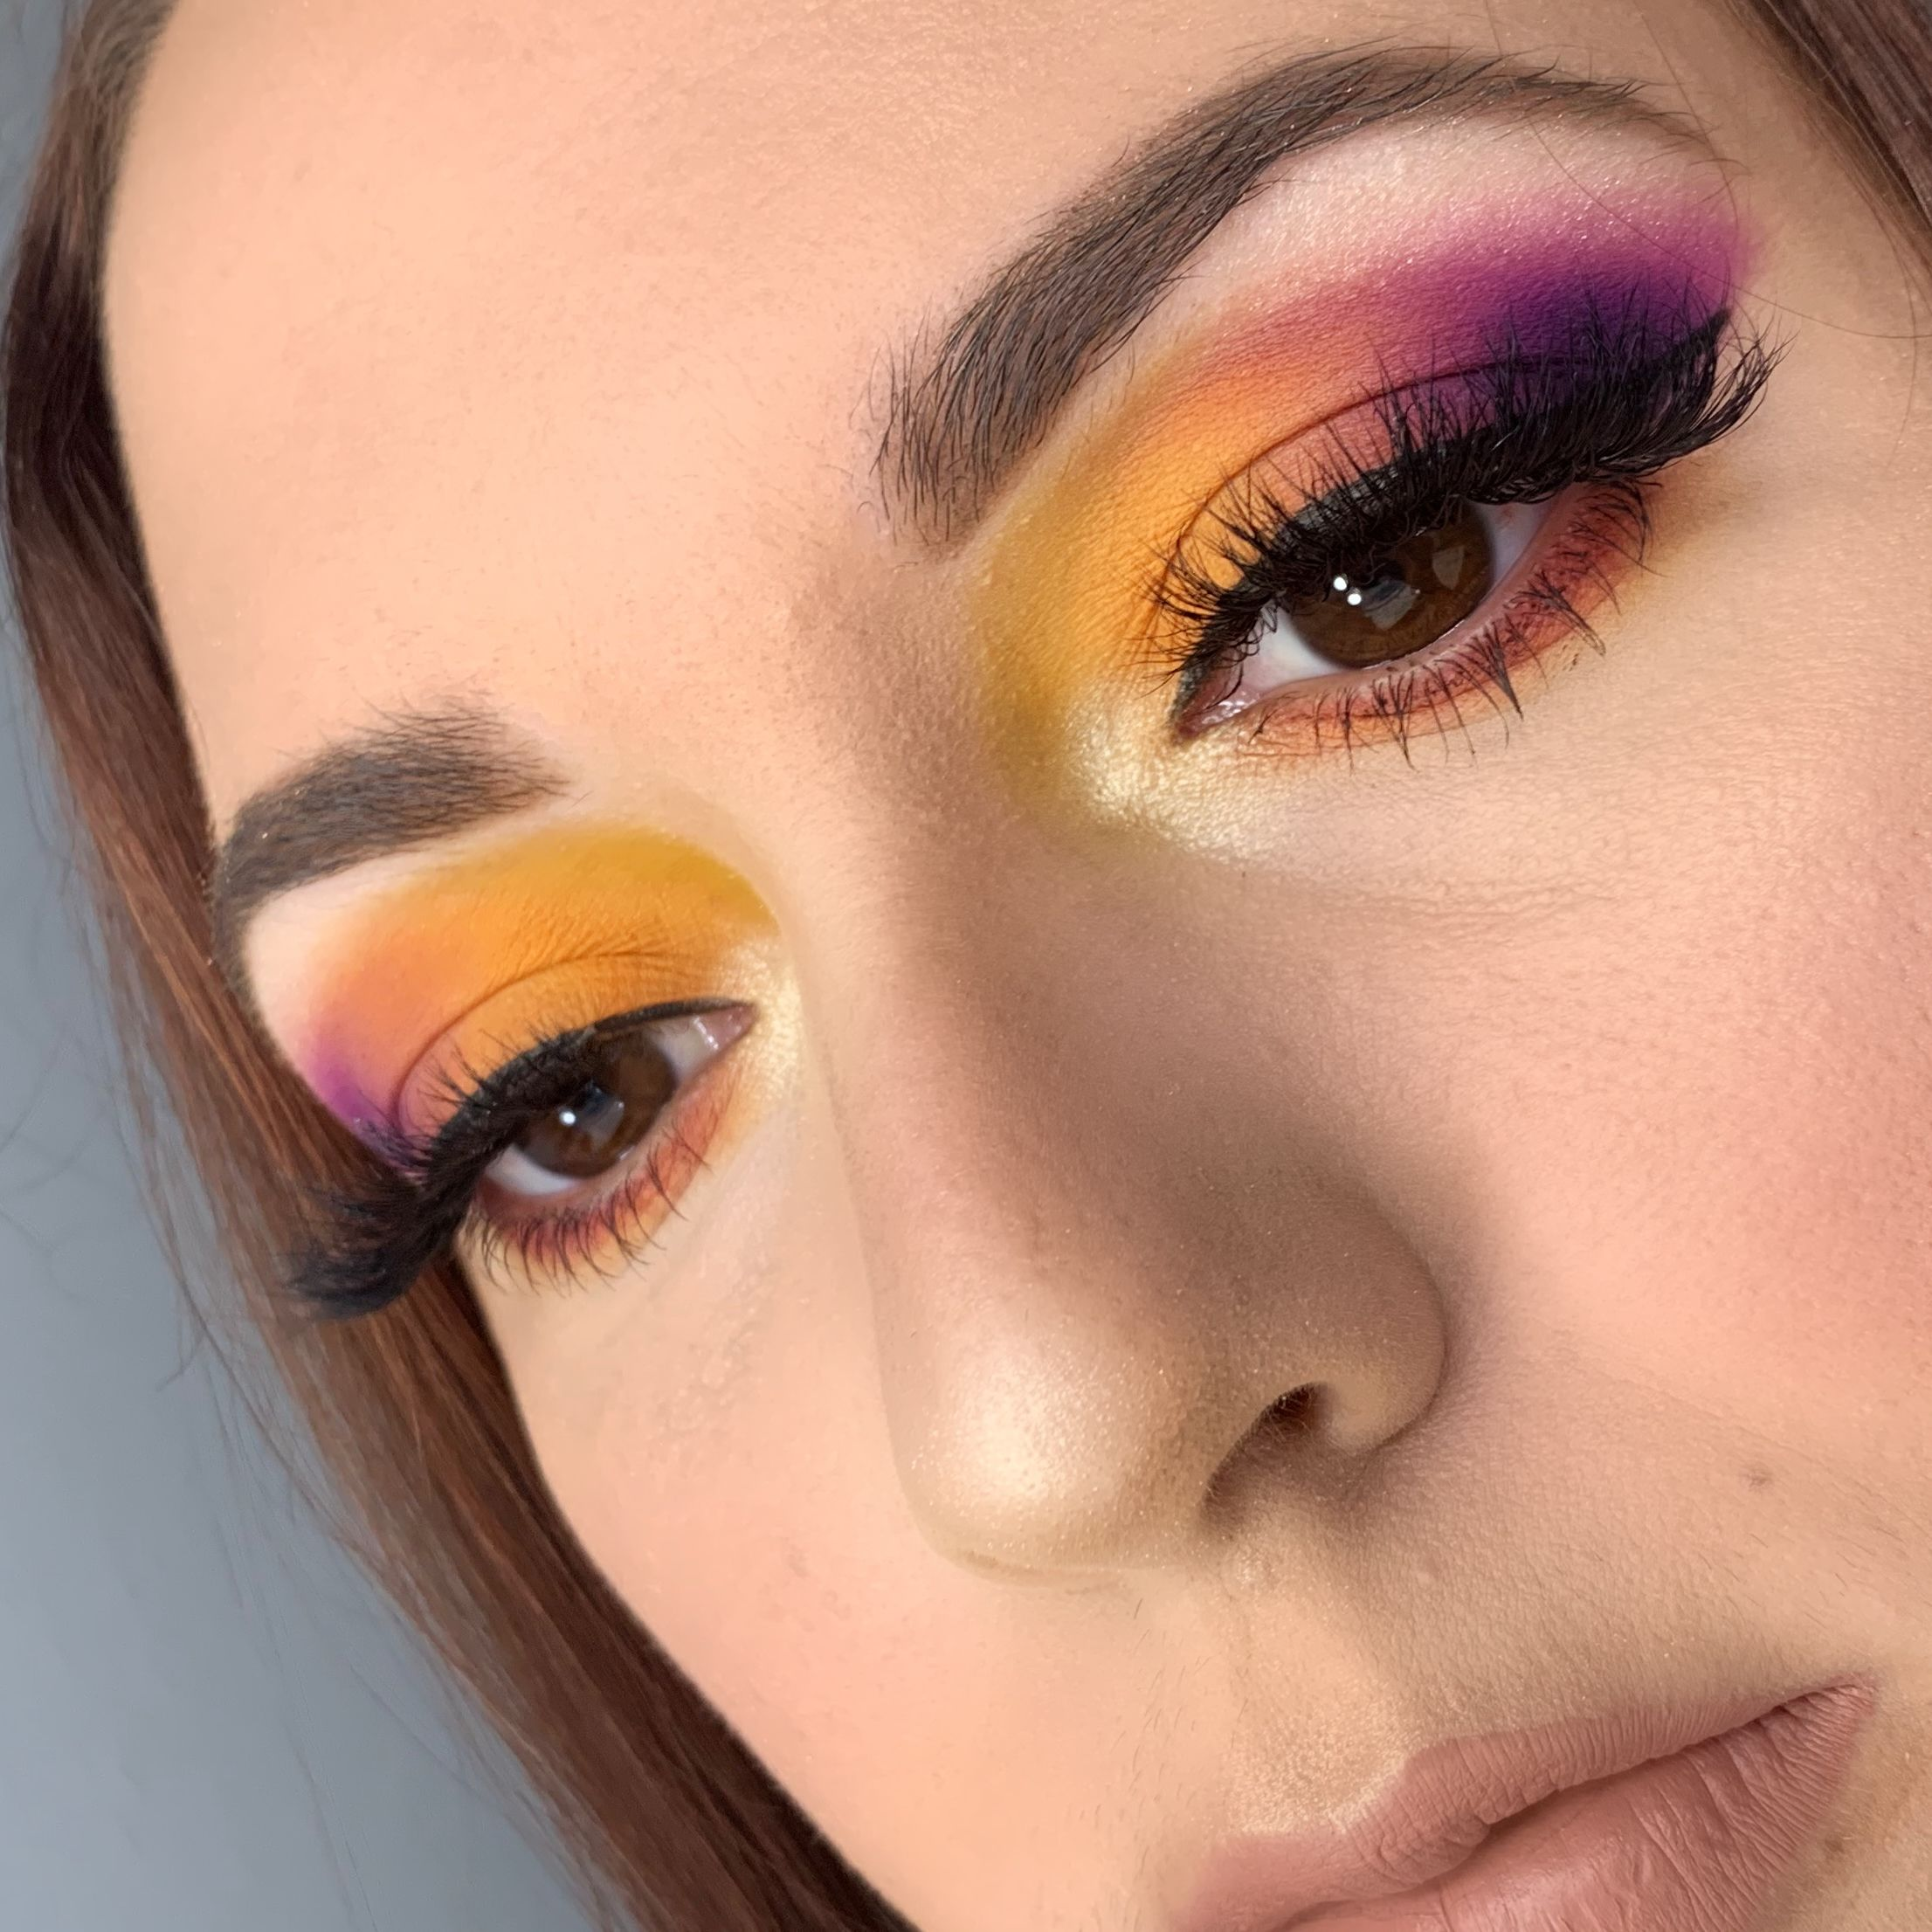 I created this tropical sus set eyeshadow look using James